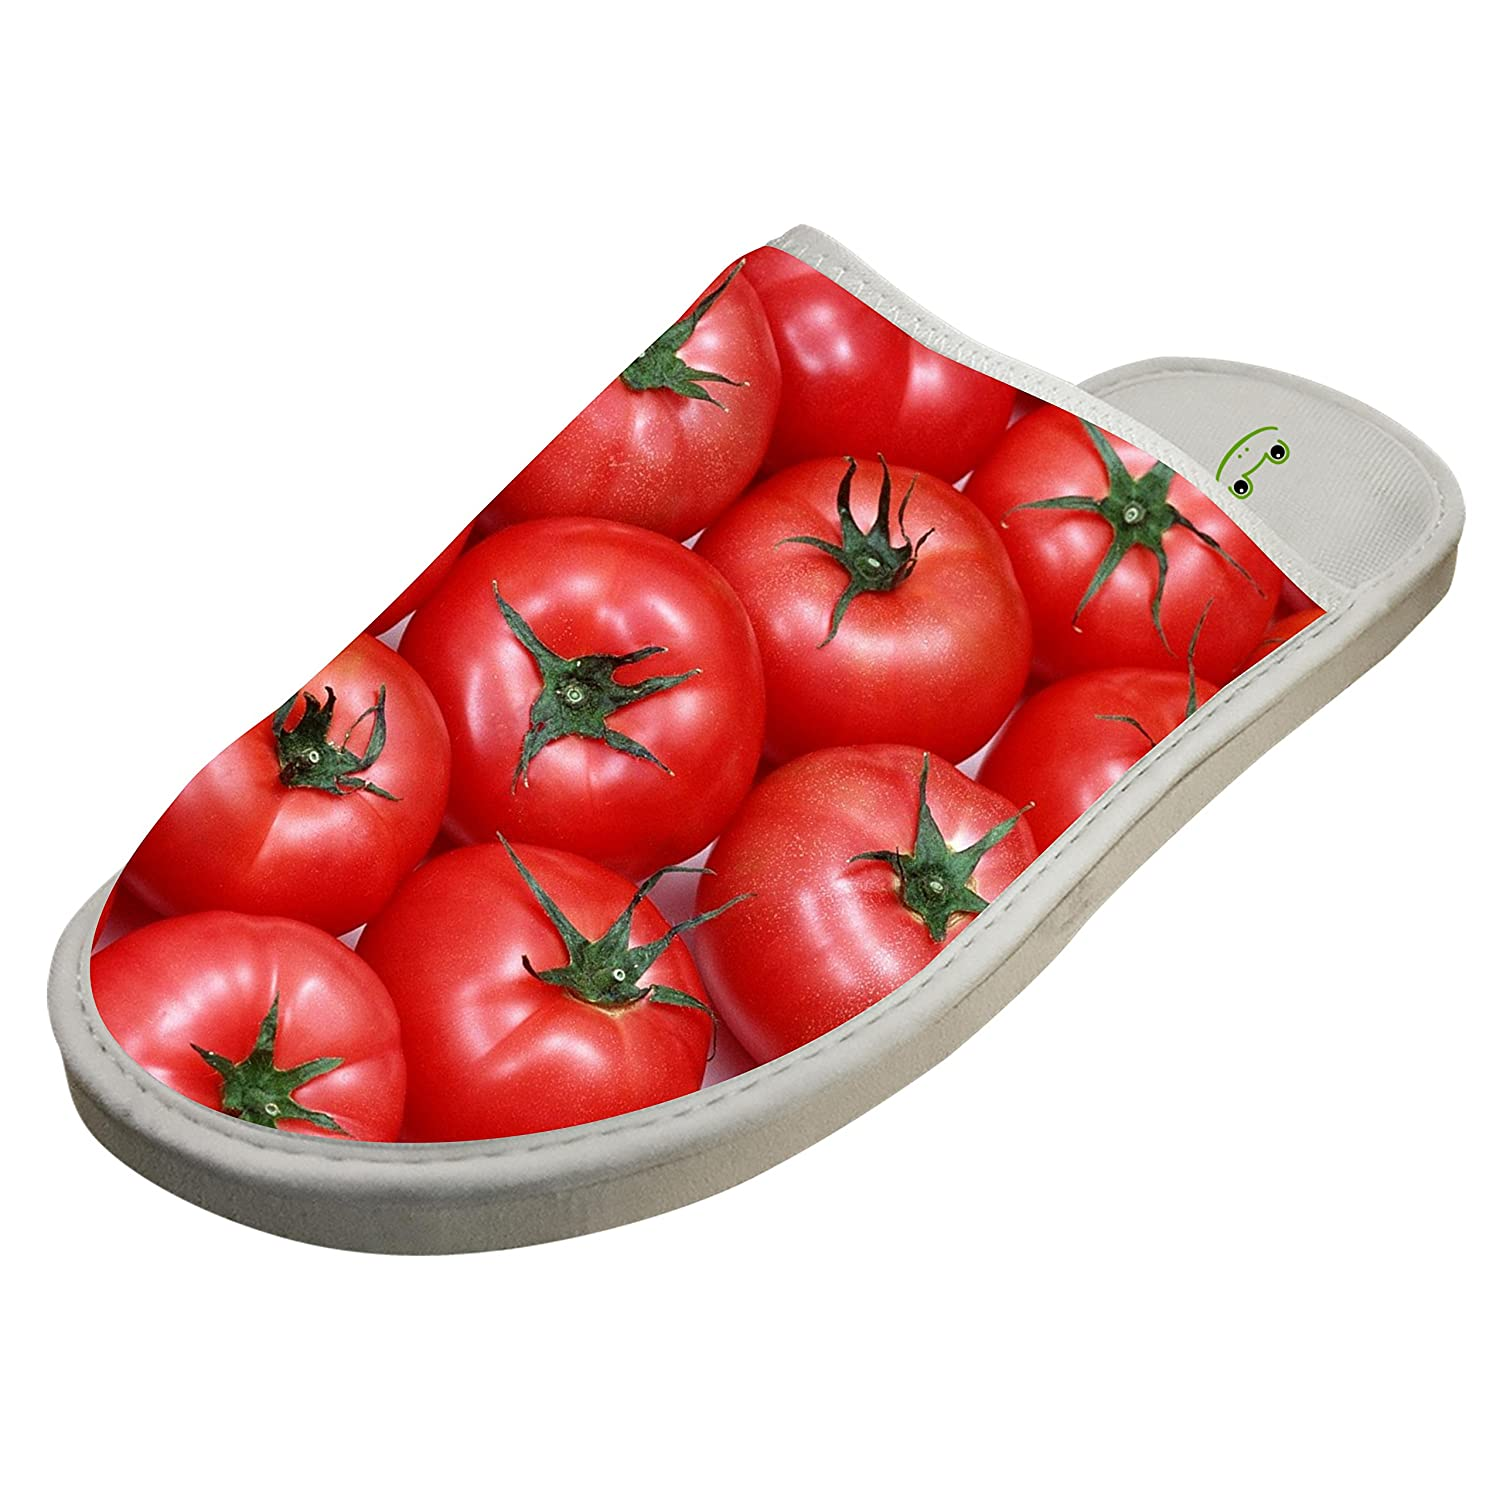 Love Apple Cherry Tomato Slippers Home Slip-On Sandals Flat Sleeppers Shoes Custom Flip-Flops Adults